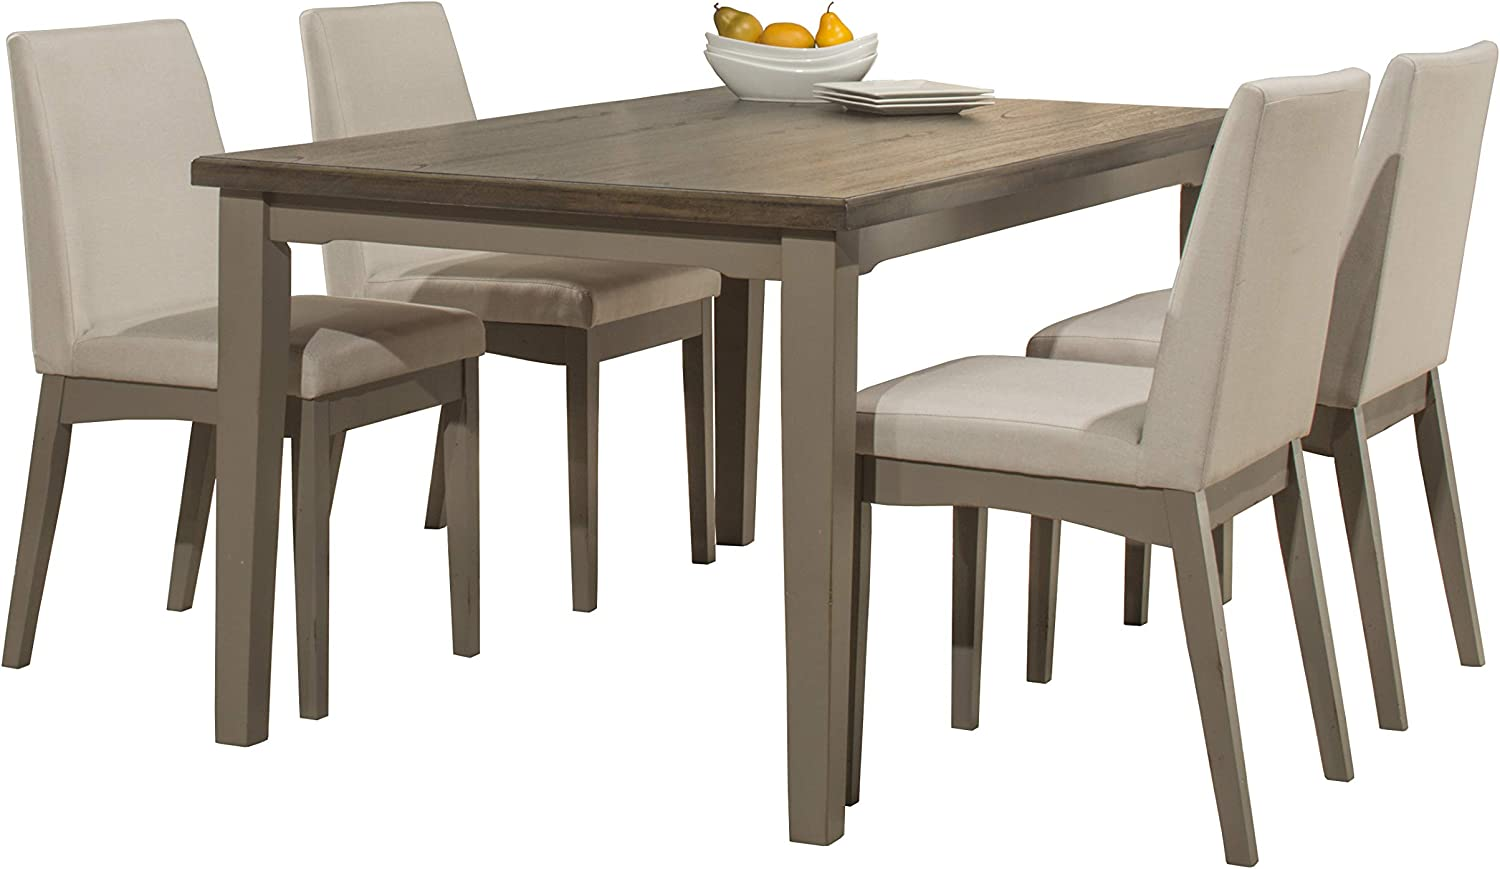 Hillsdale Furniture 5 Piece Dining Set with Clarion Rectangle Upholstered Chairs, Distressed Gray